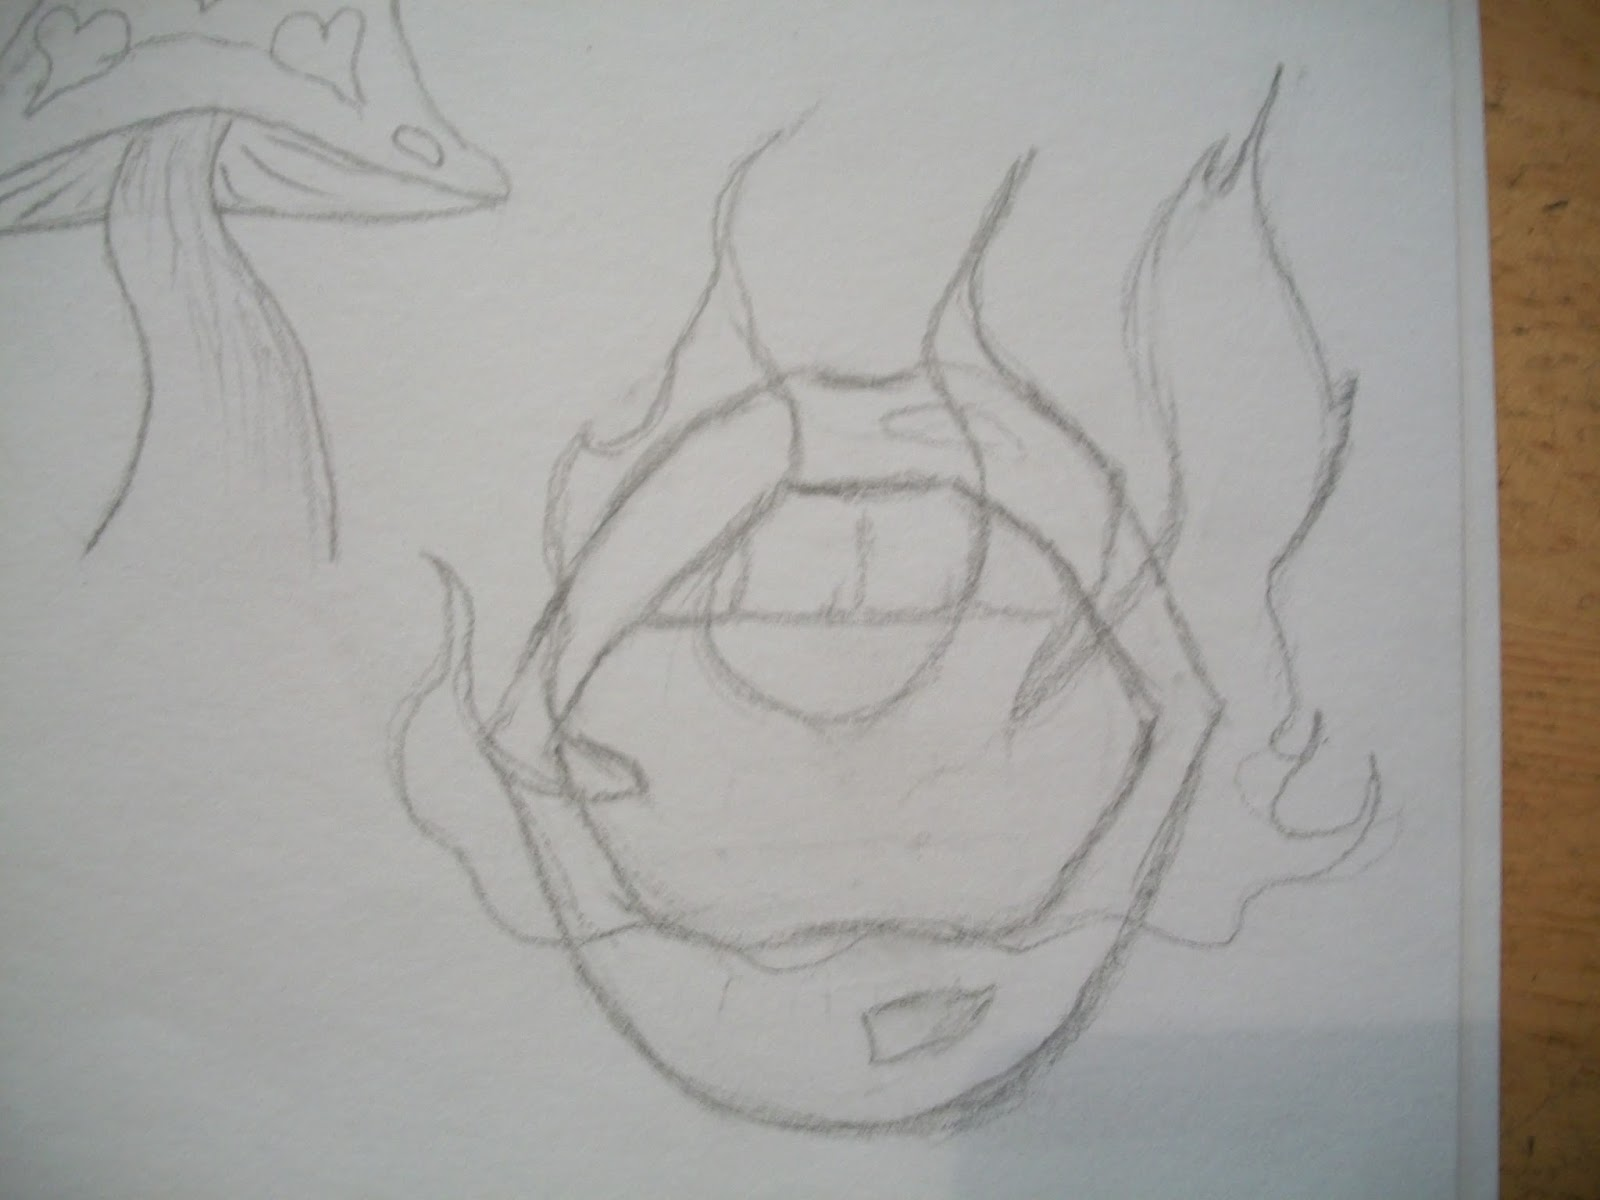 It's just a photo of Agile Lips Smoking Drawing